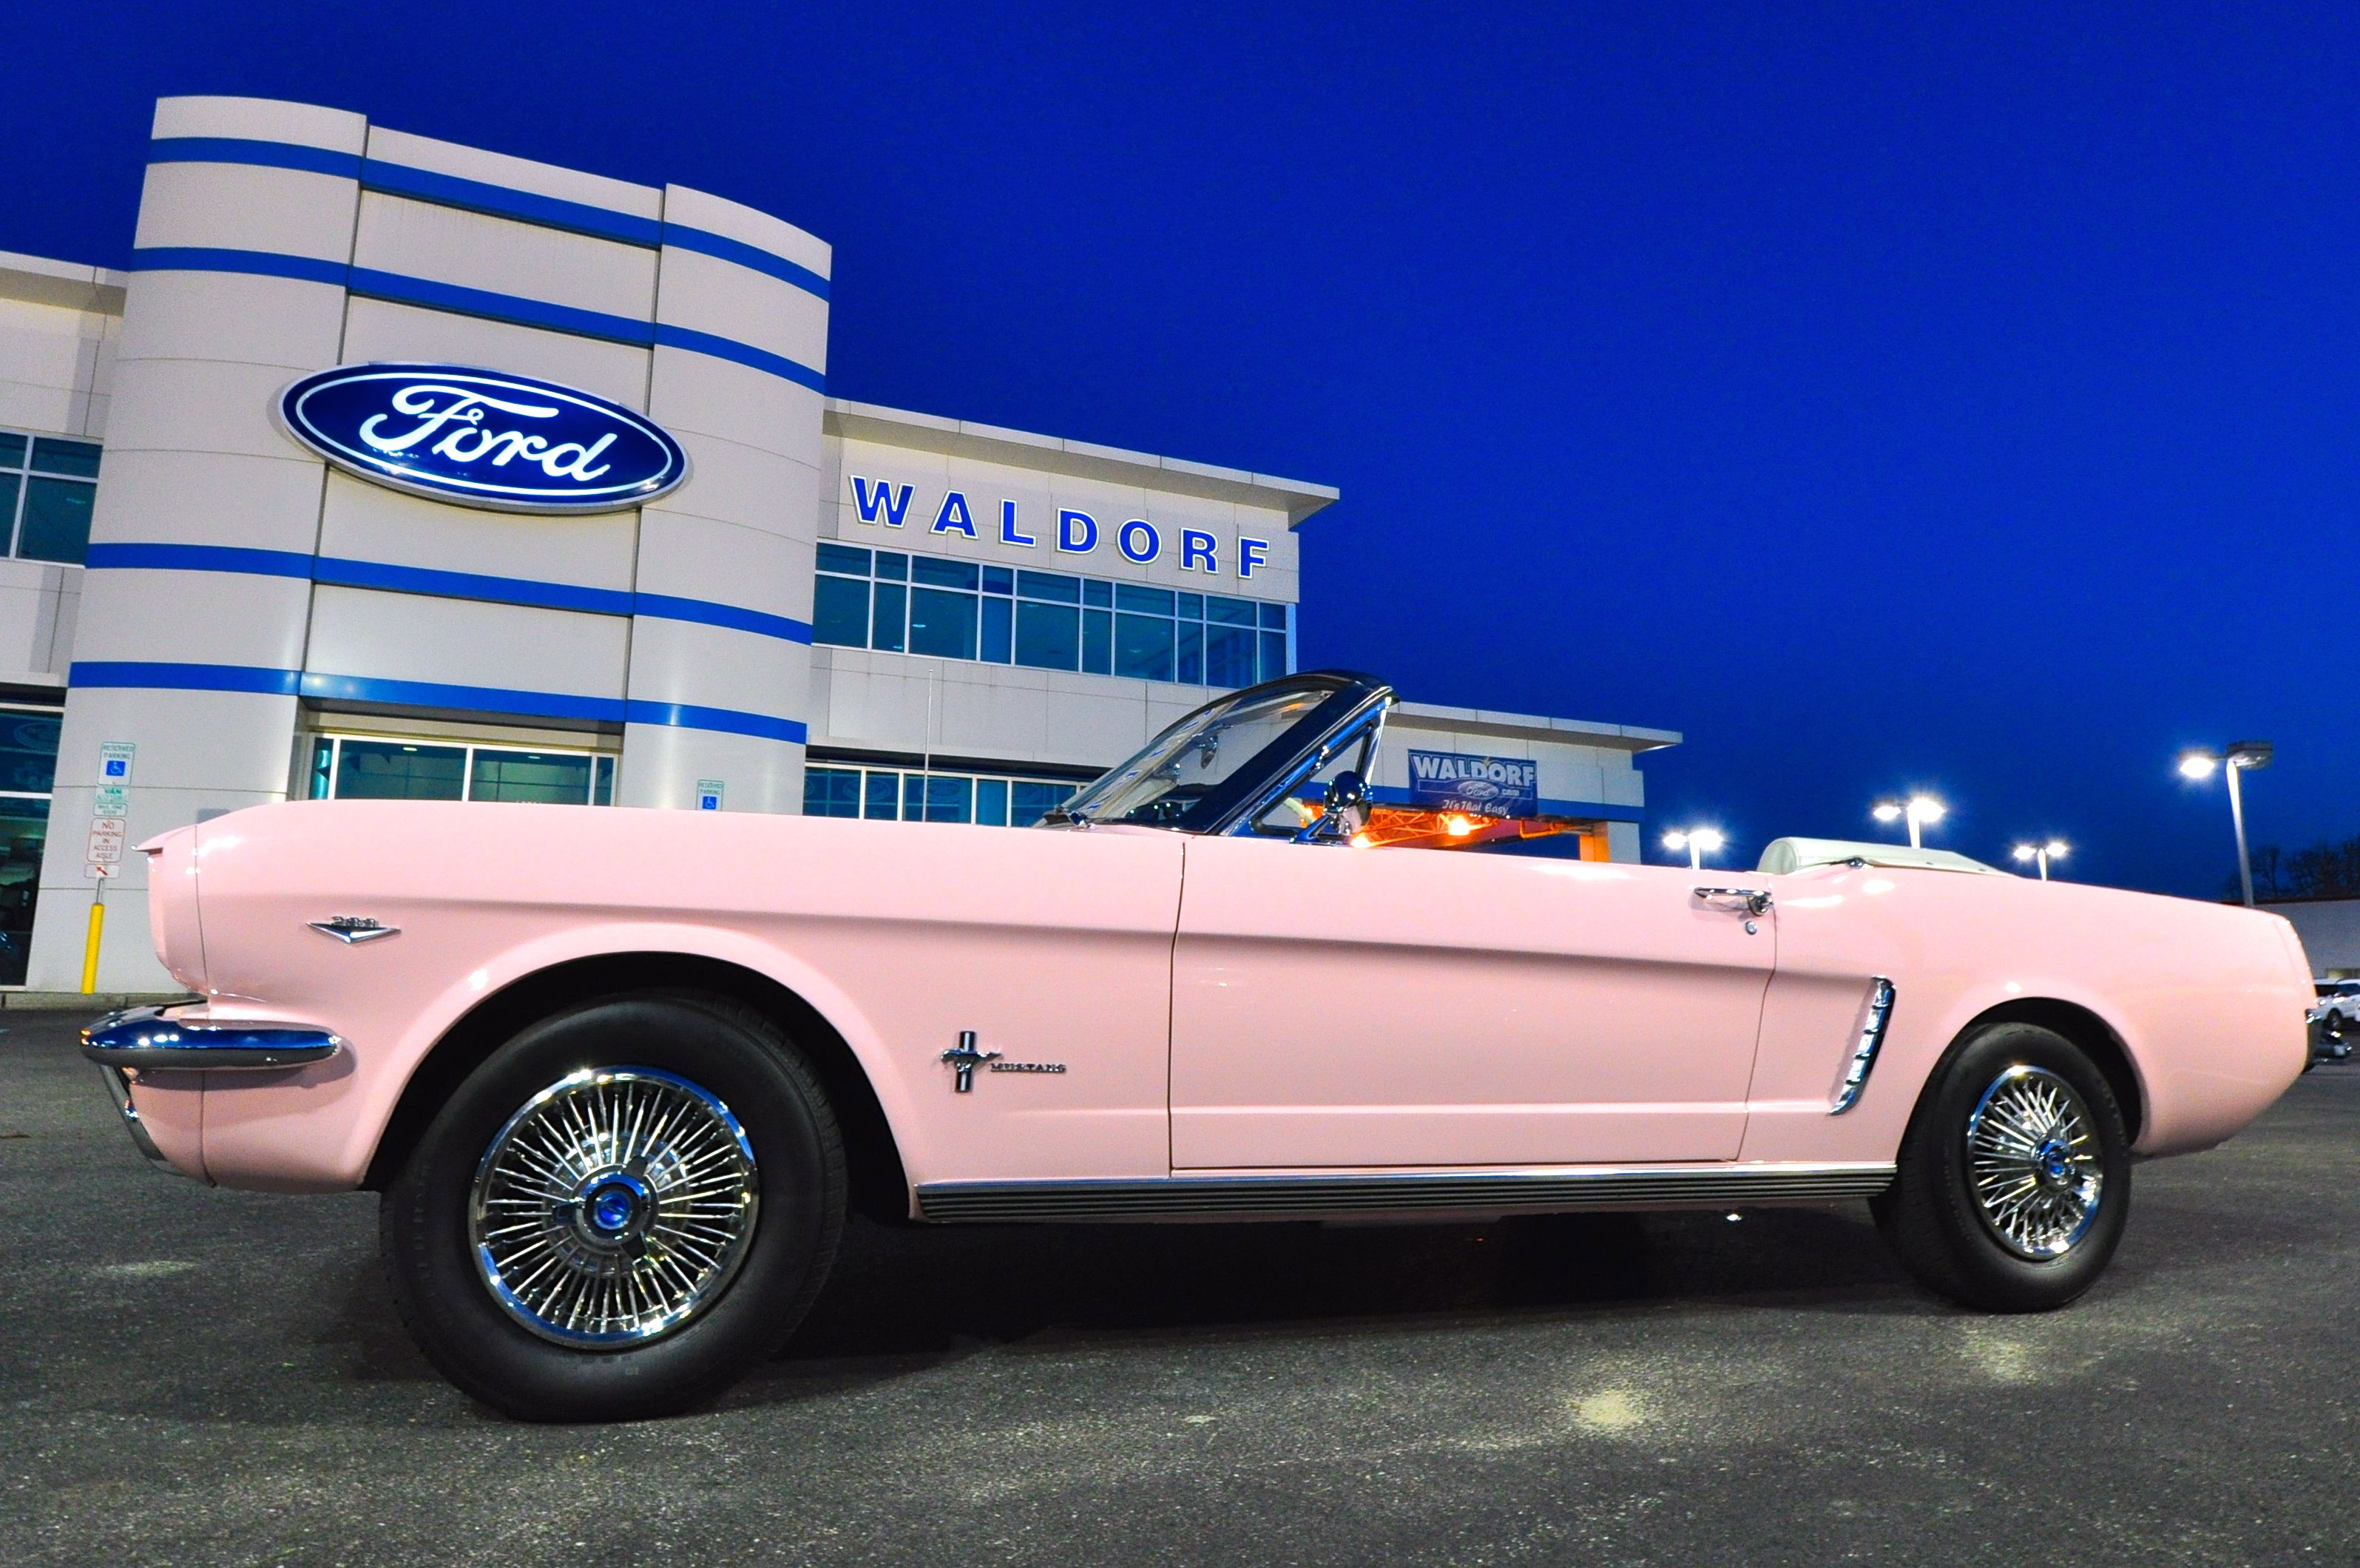 Original 1965 playmate pink color pink mustangs information news and more